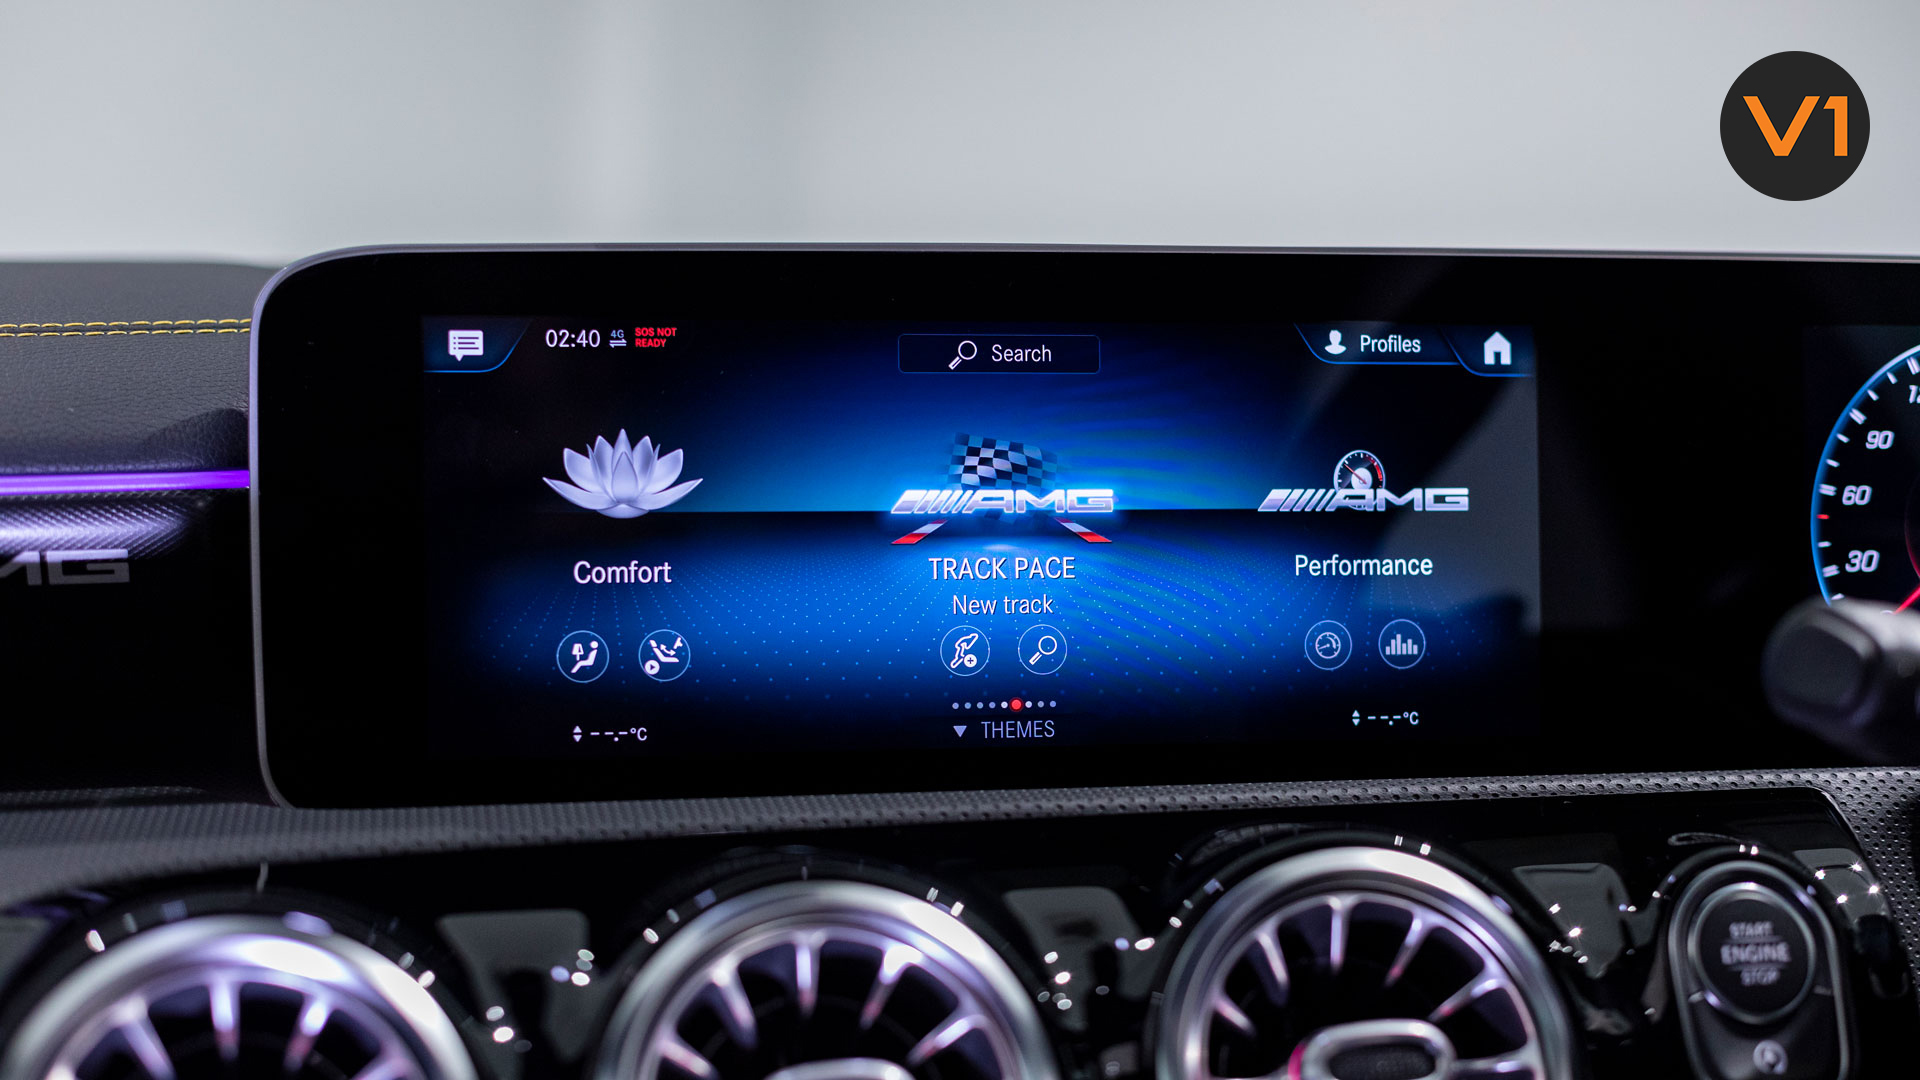 Mercedes-AMG CLA45 S Coupe AMG 4MATIC+ Plus - Media Display